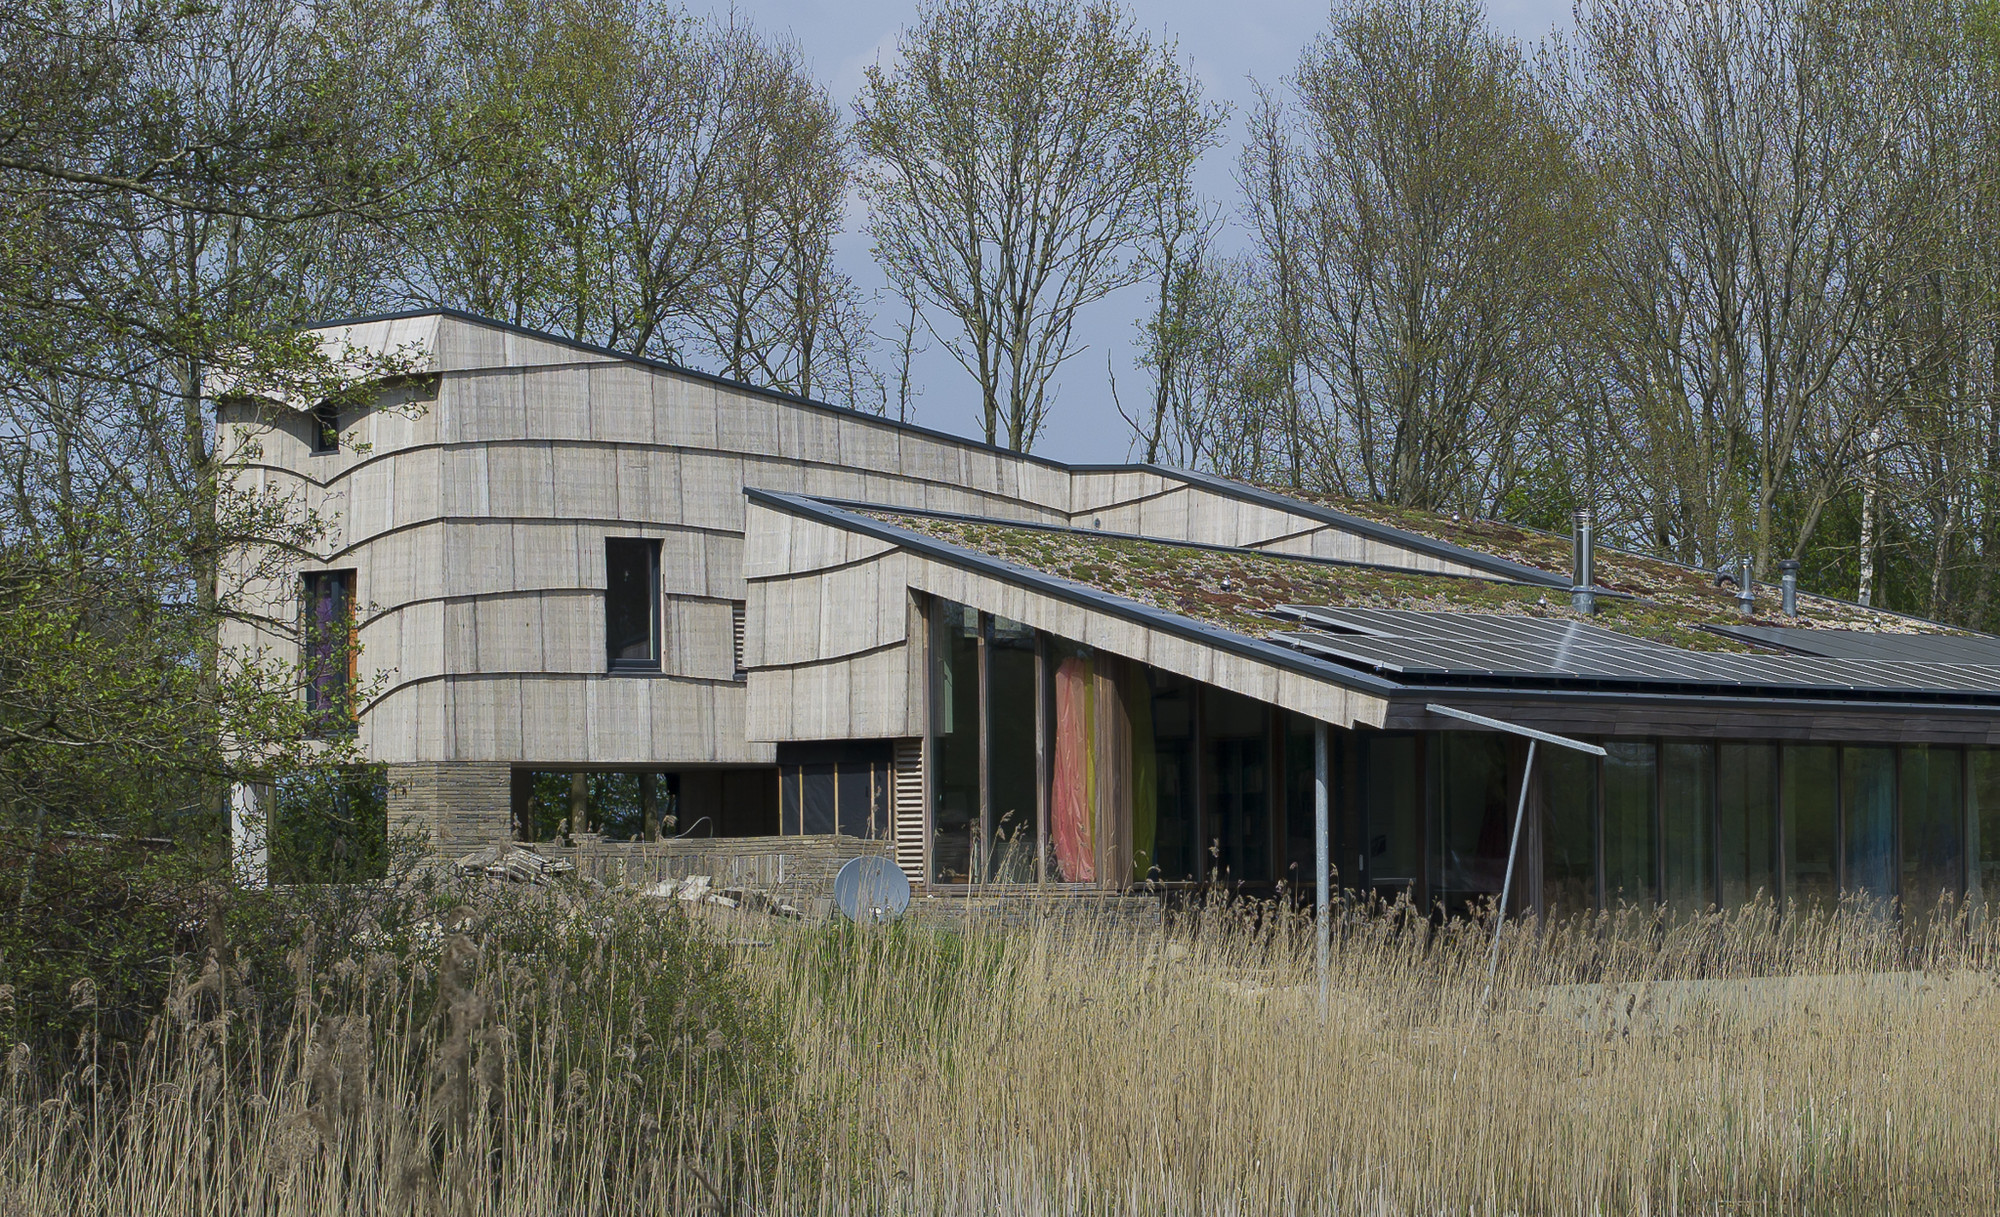 Self-Sufficient House / Pieter Brink, Courtesy of Pieter Brink